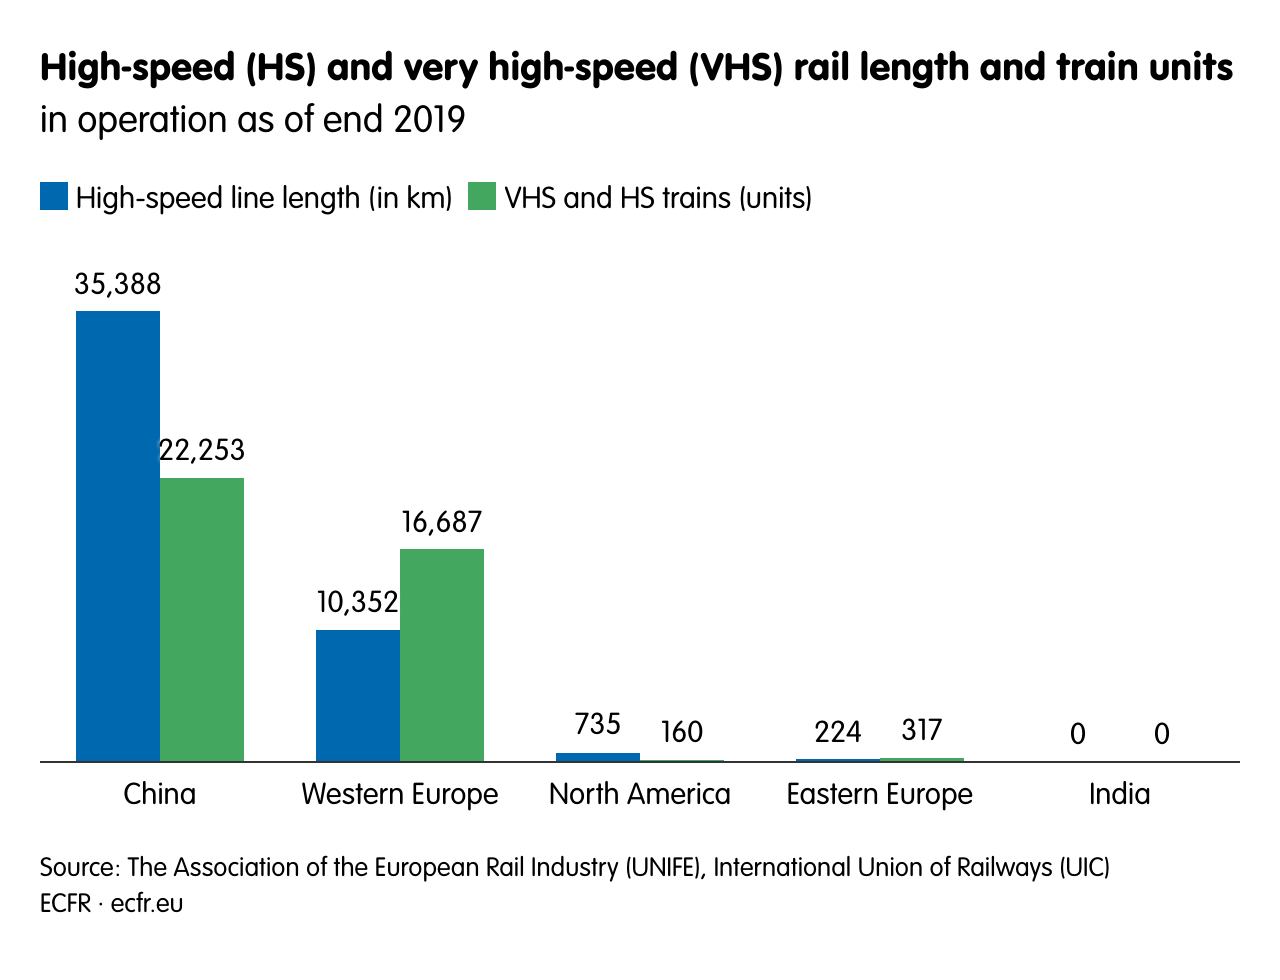 High-speed (HS) and very high-speed (VHS) rail length and train units